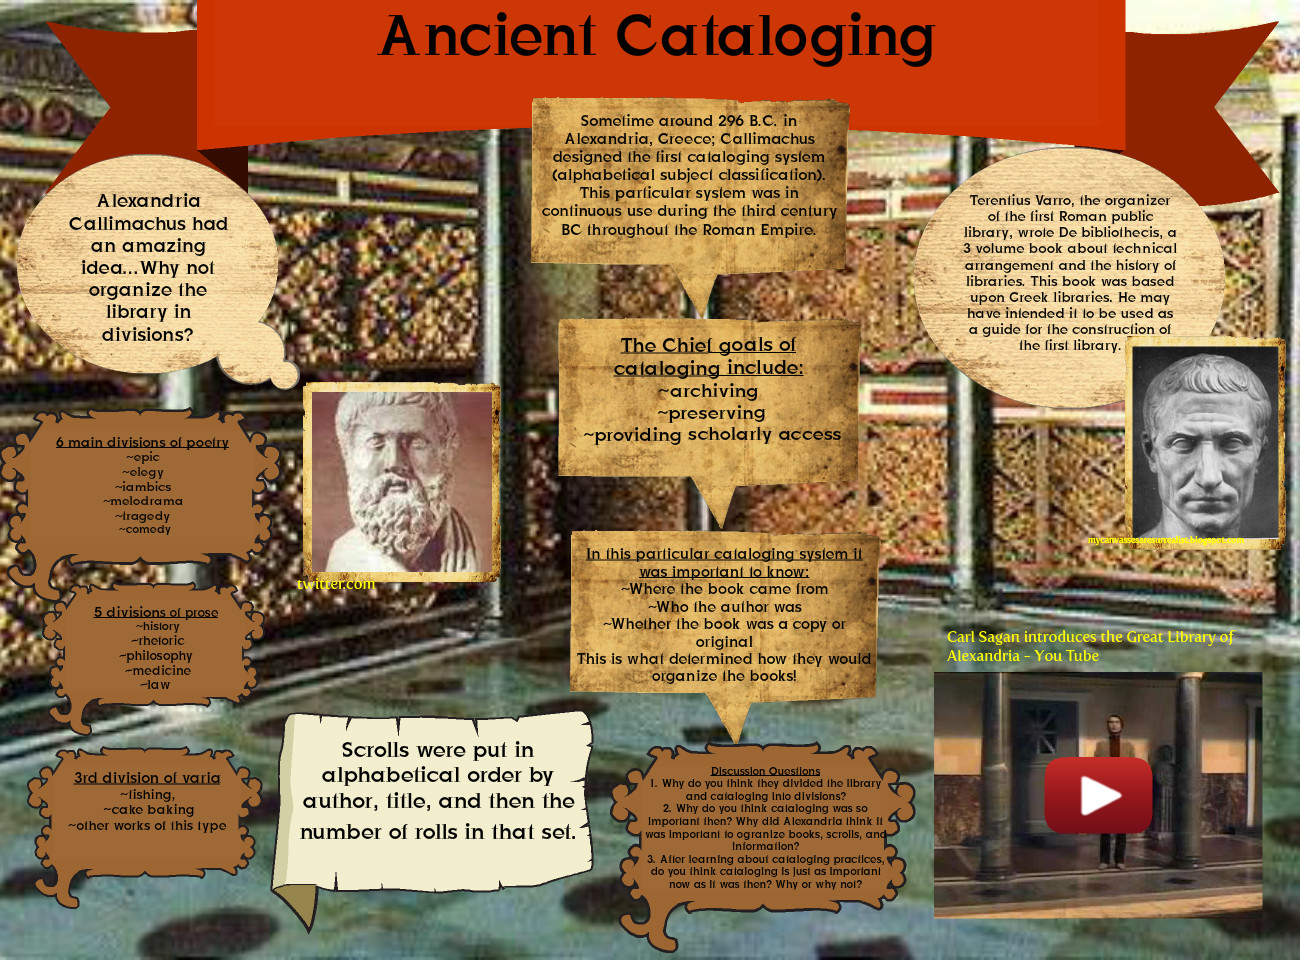 History of Cataloging